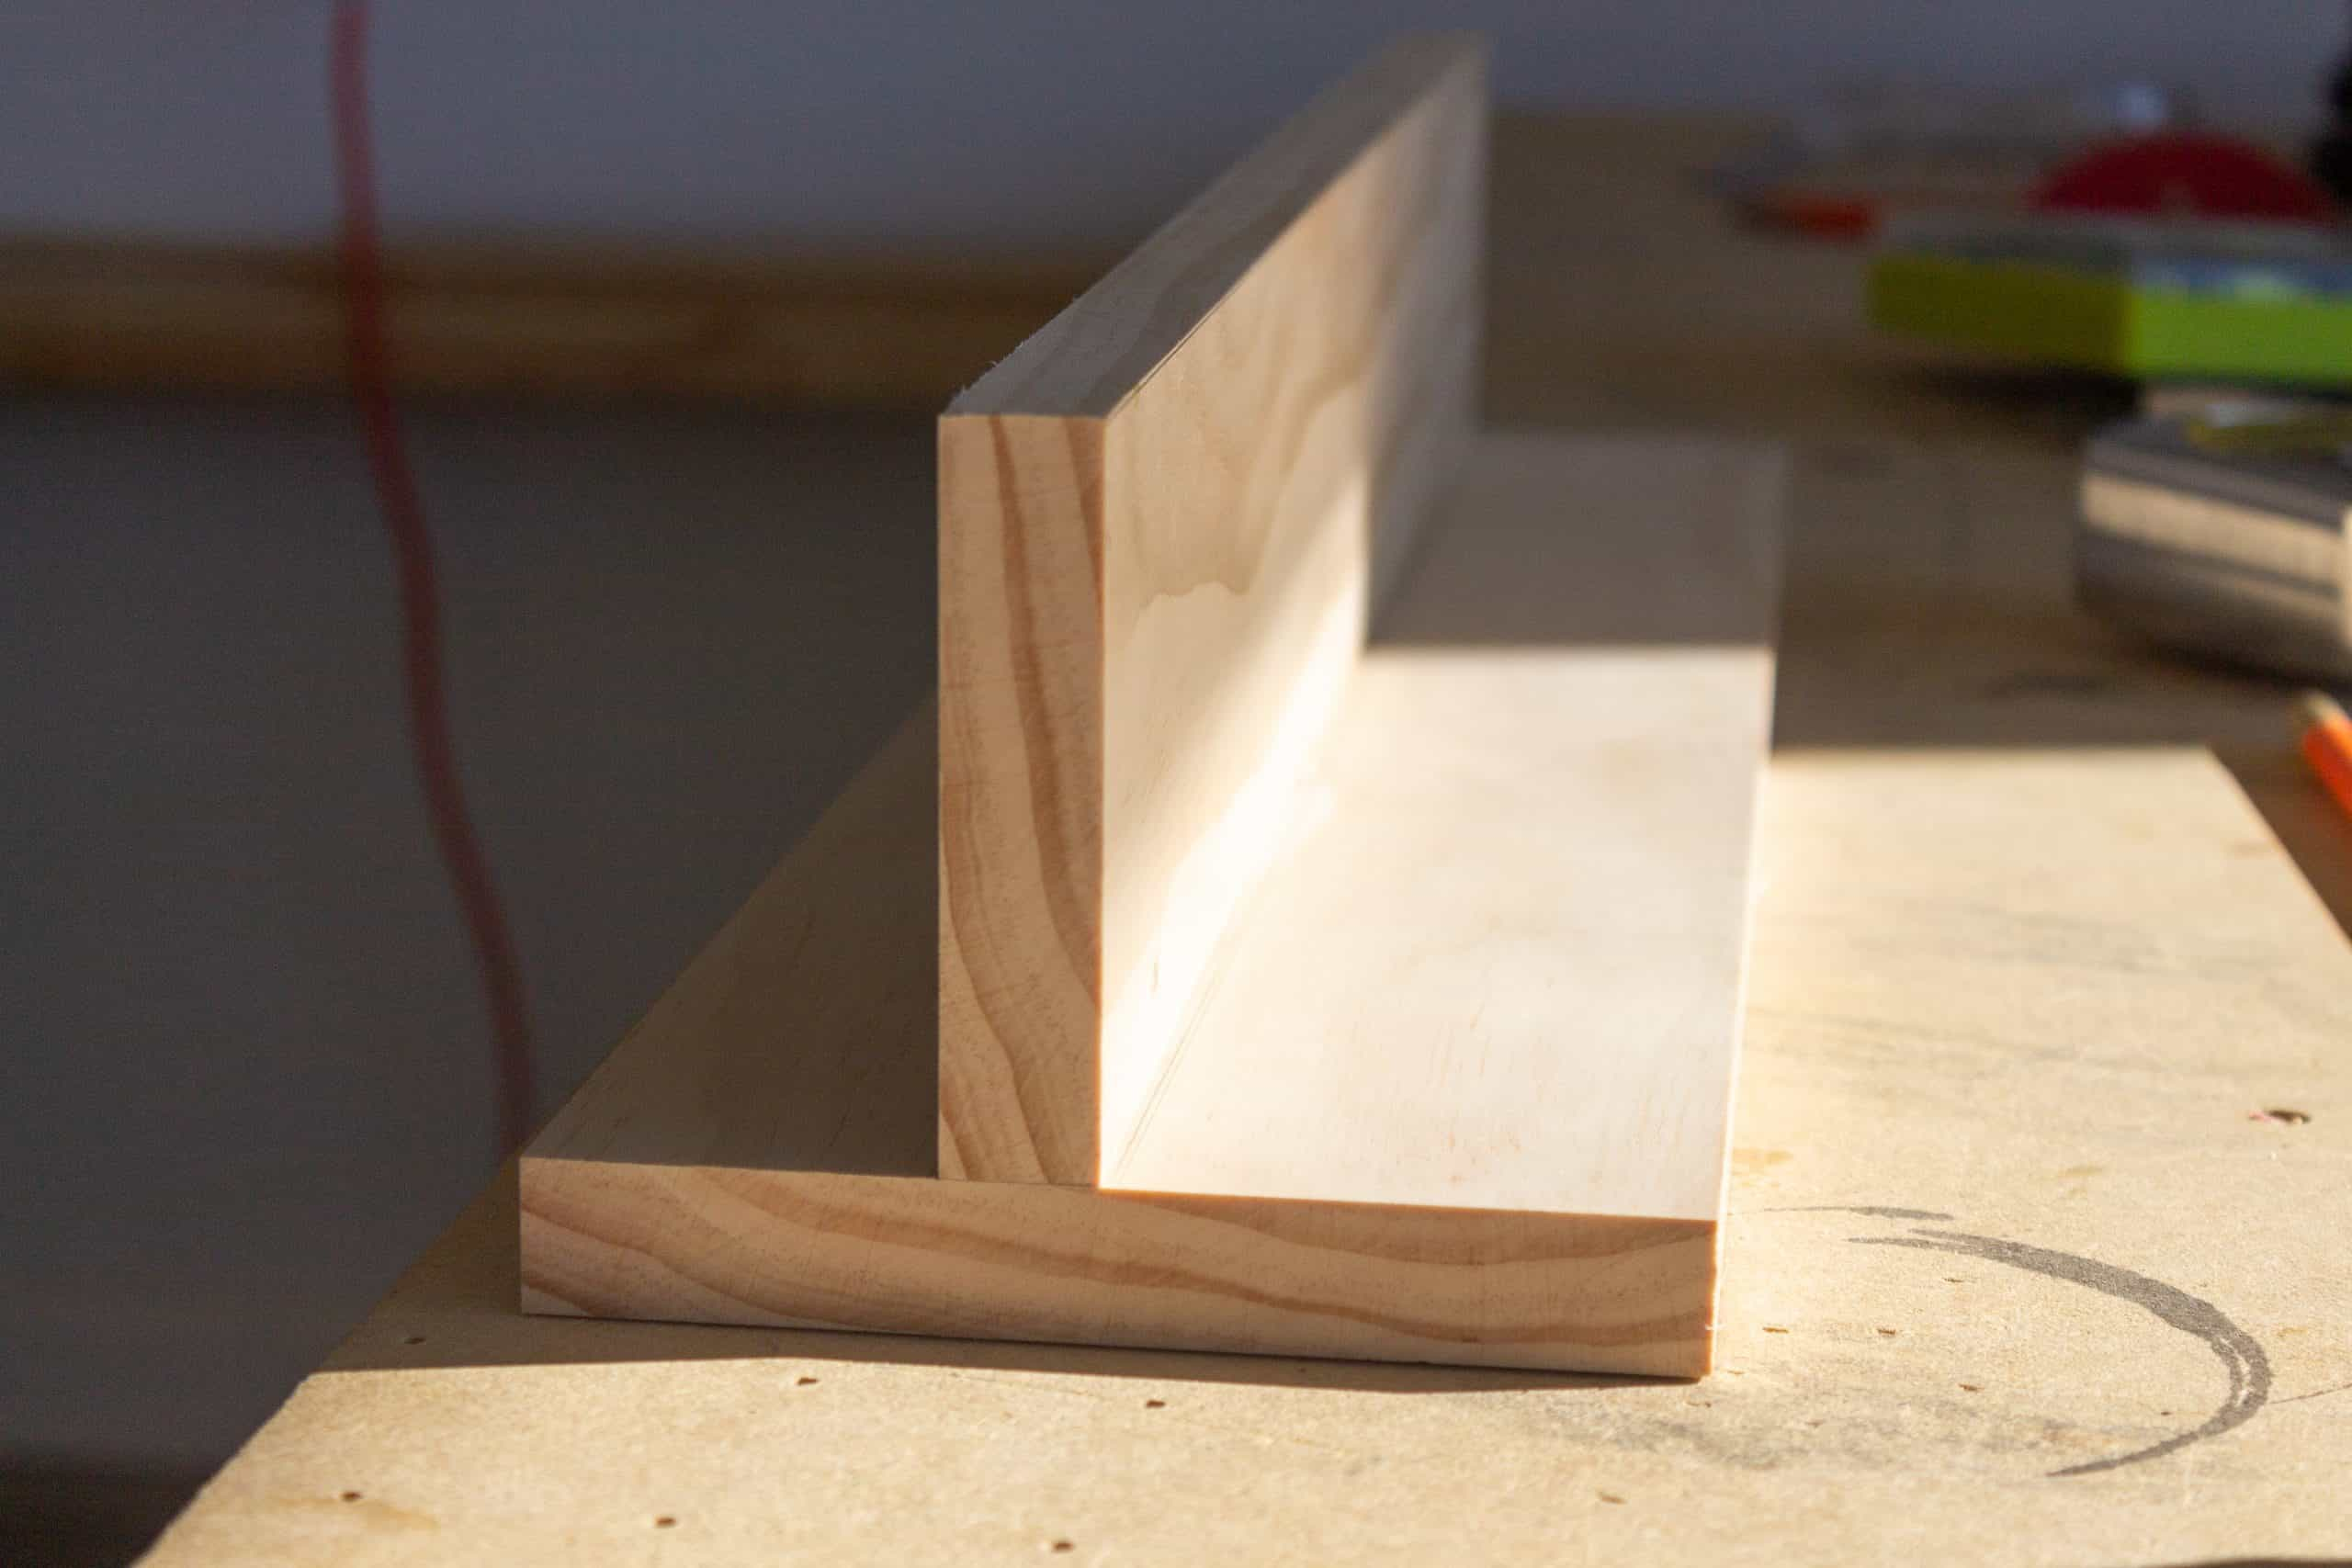 Place the peg rail shelf perpendicular to the back board and trace it. Then continue assembling the wooden peg rail shelf with mail holder.